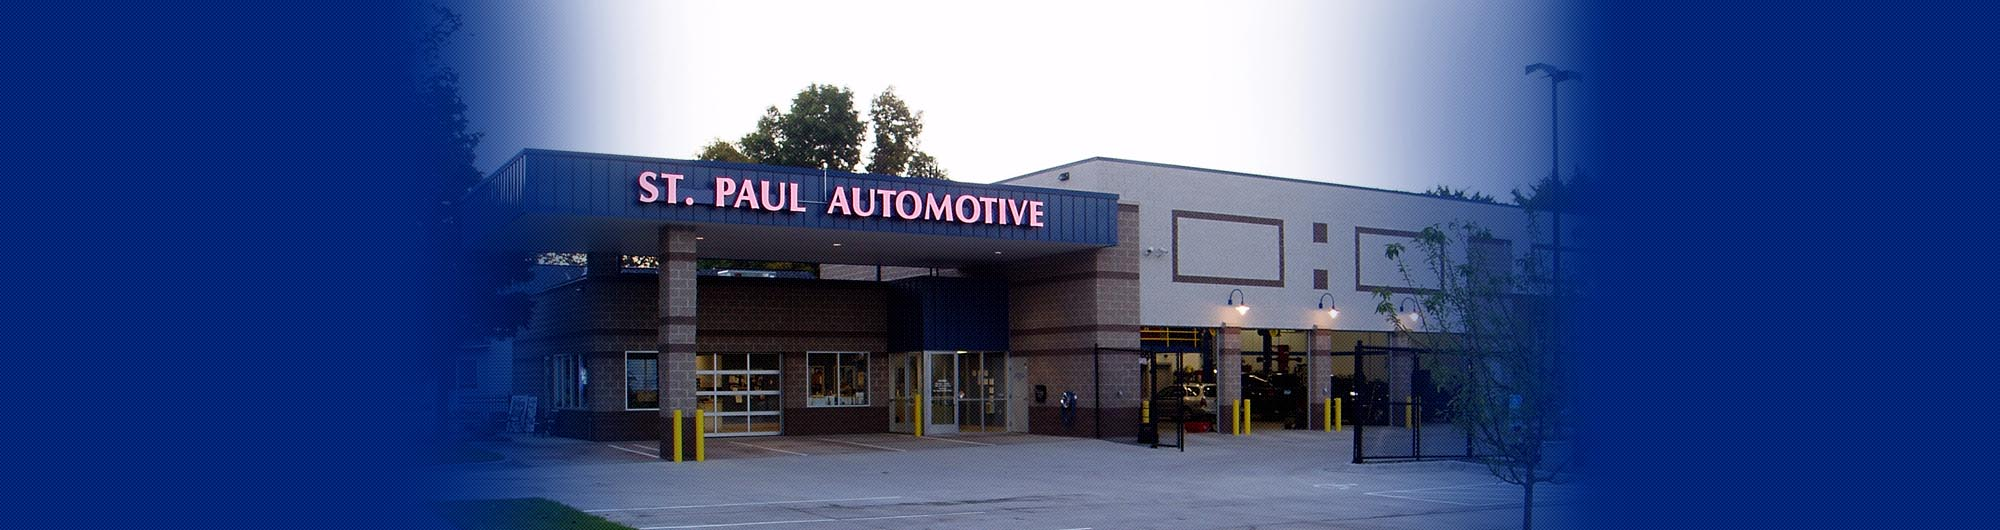 Auto Repair in St. Paul